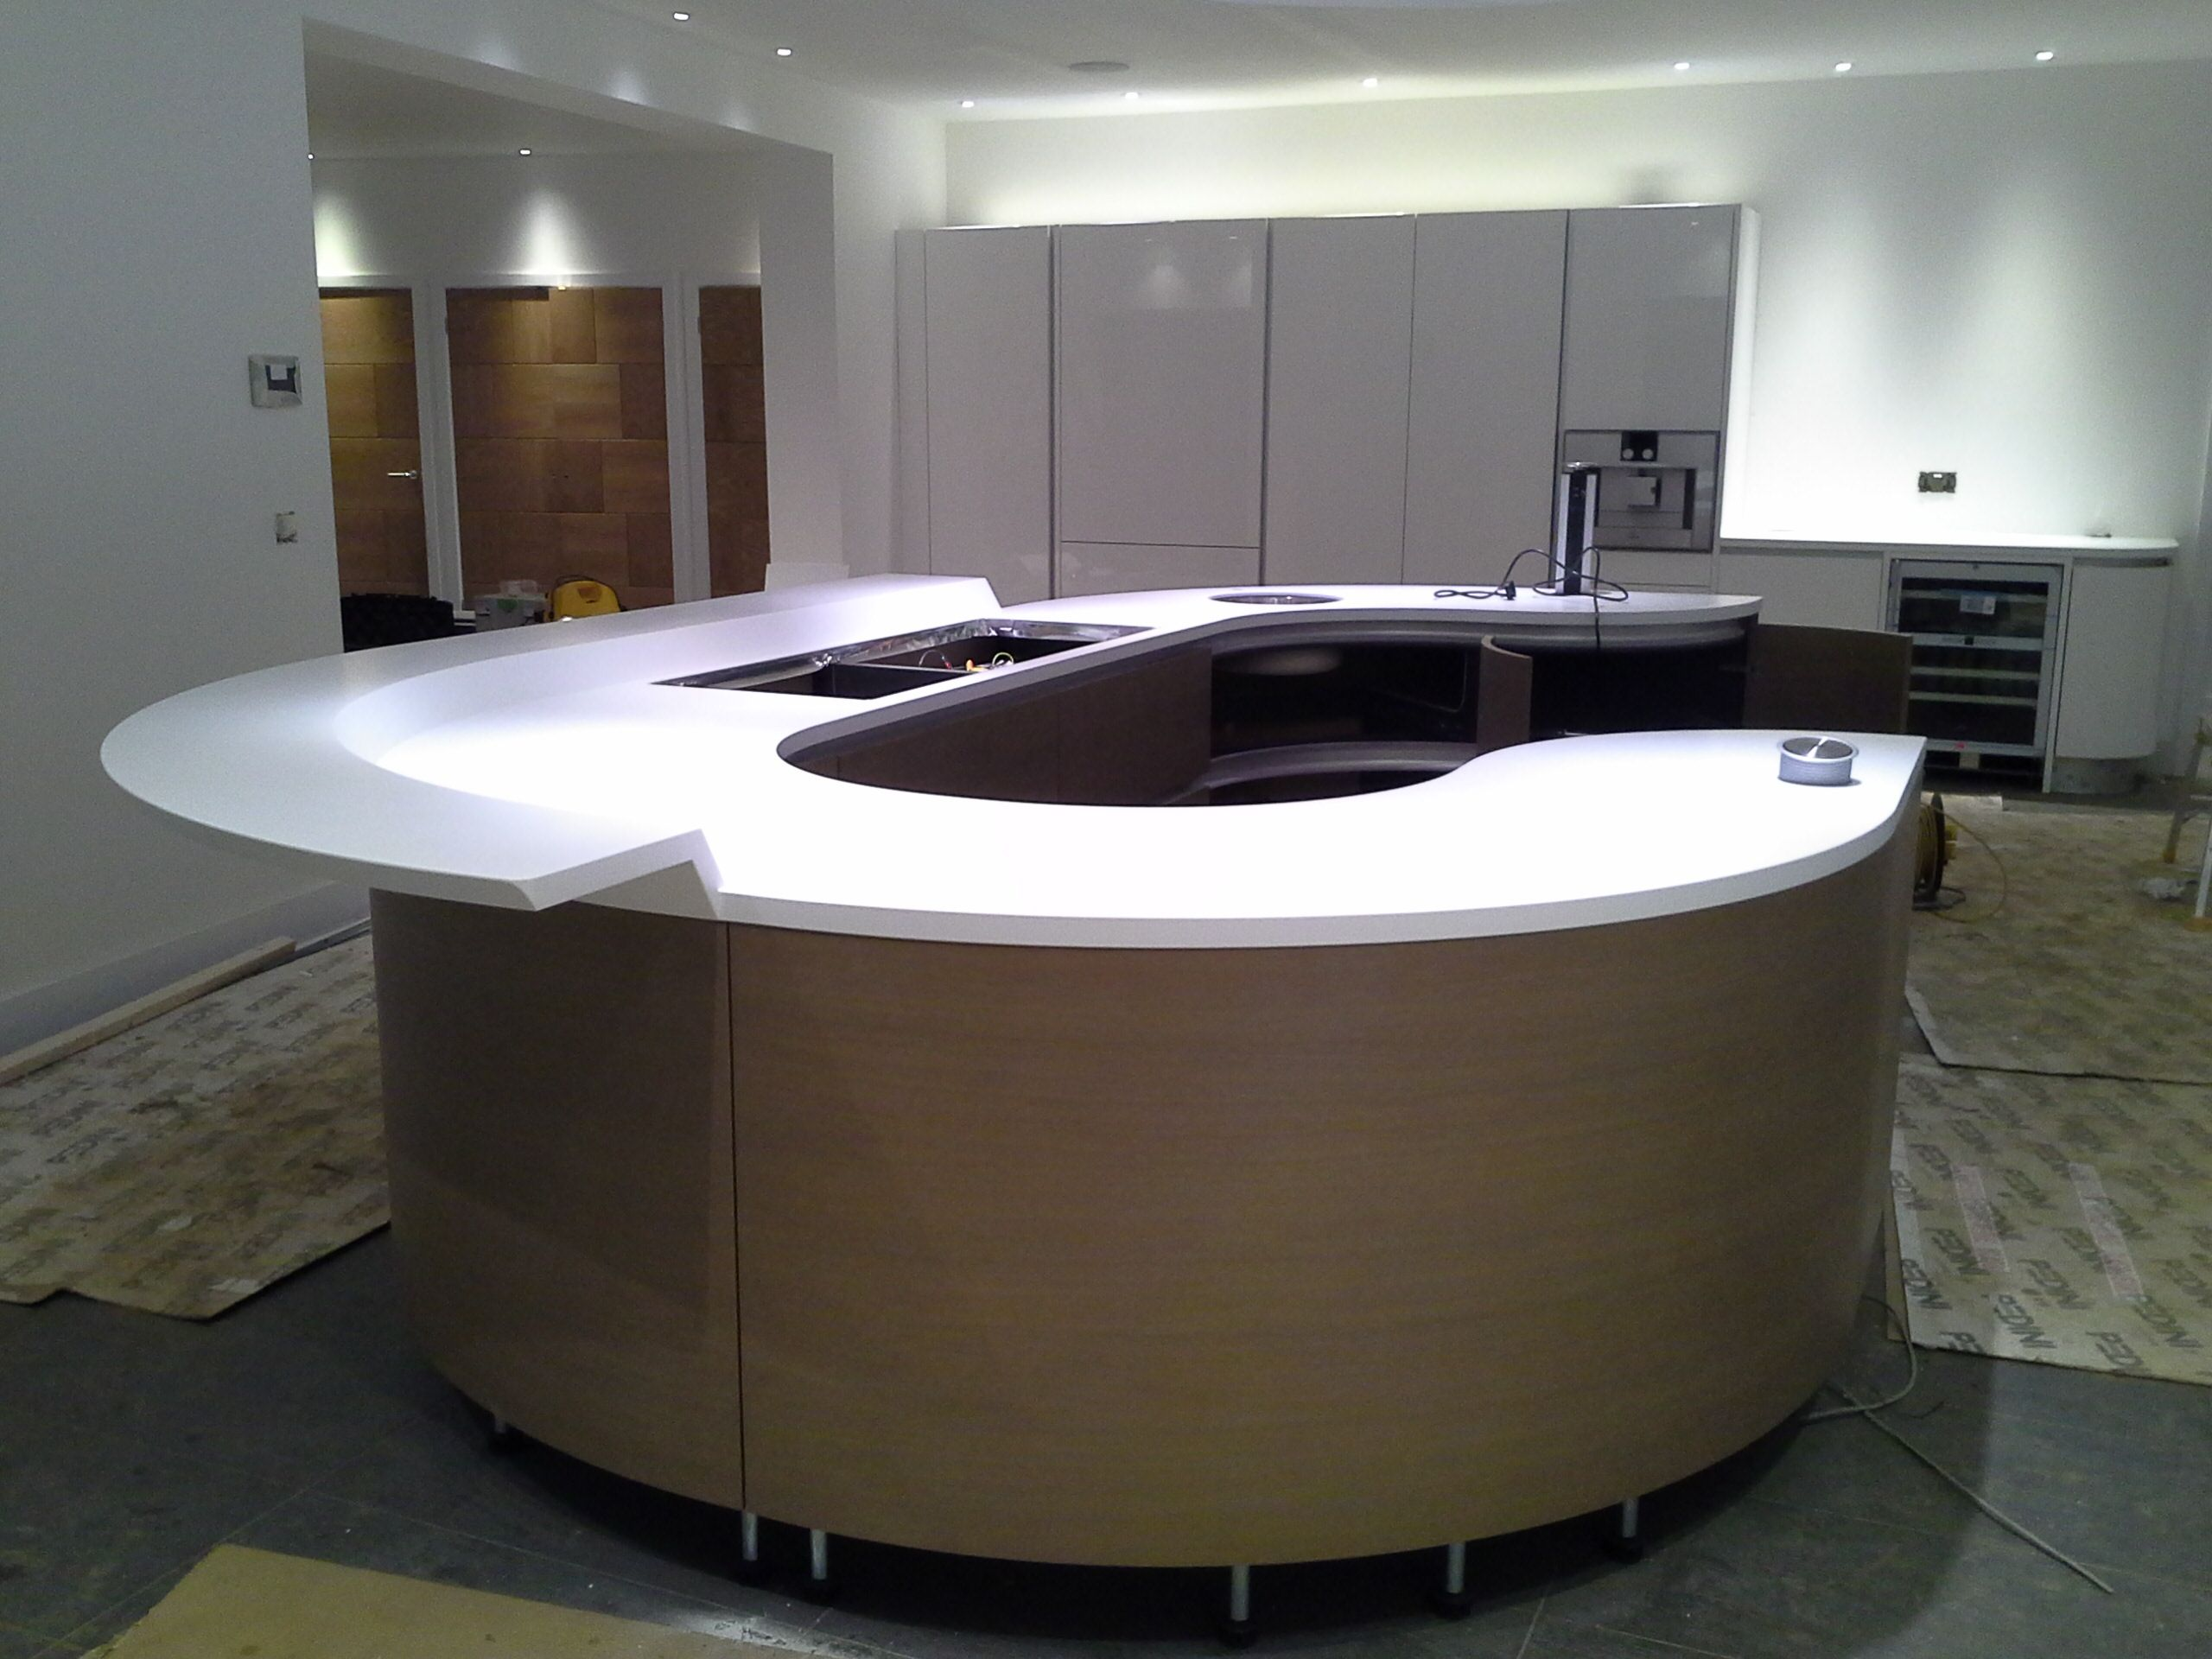 designer white corian flying breakfast bar on curved. Black Bedroom Furniture Sets. Home Design Ideas